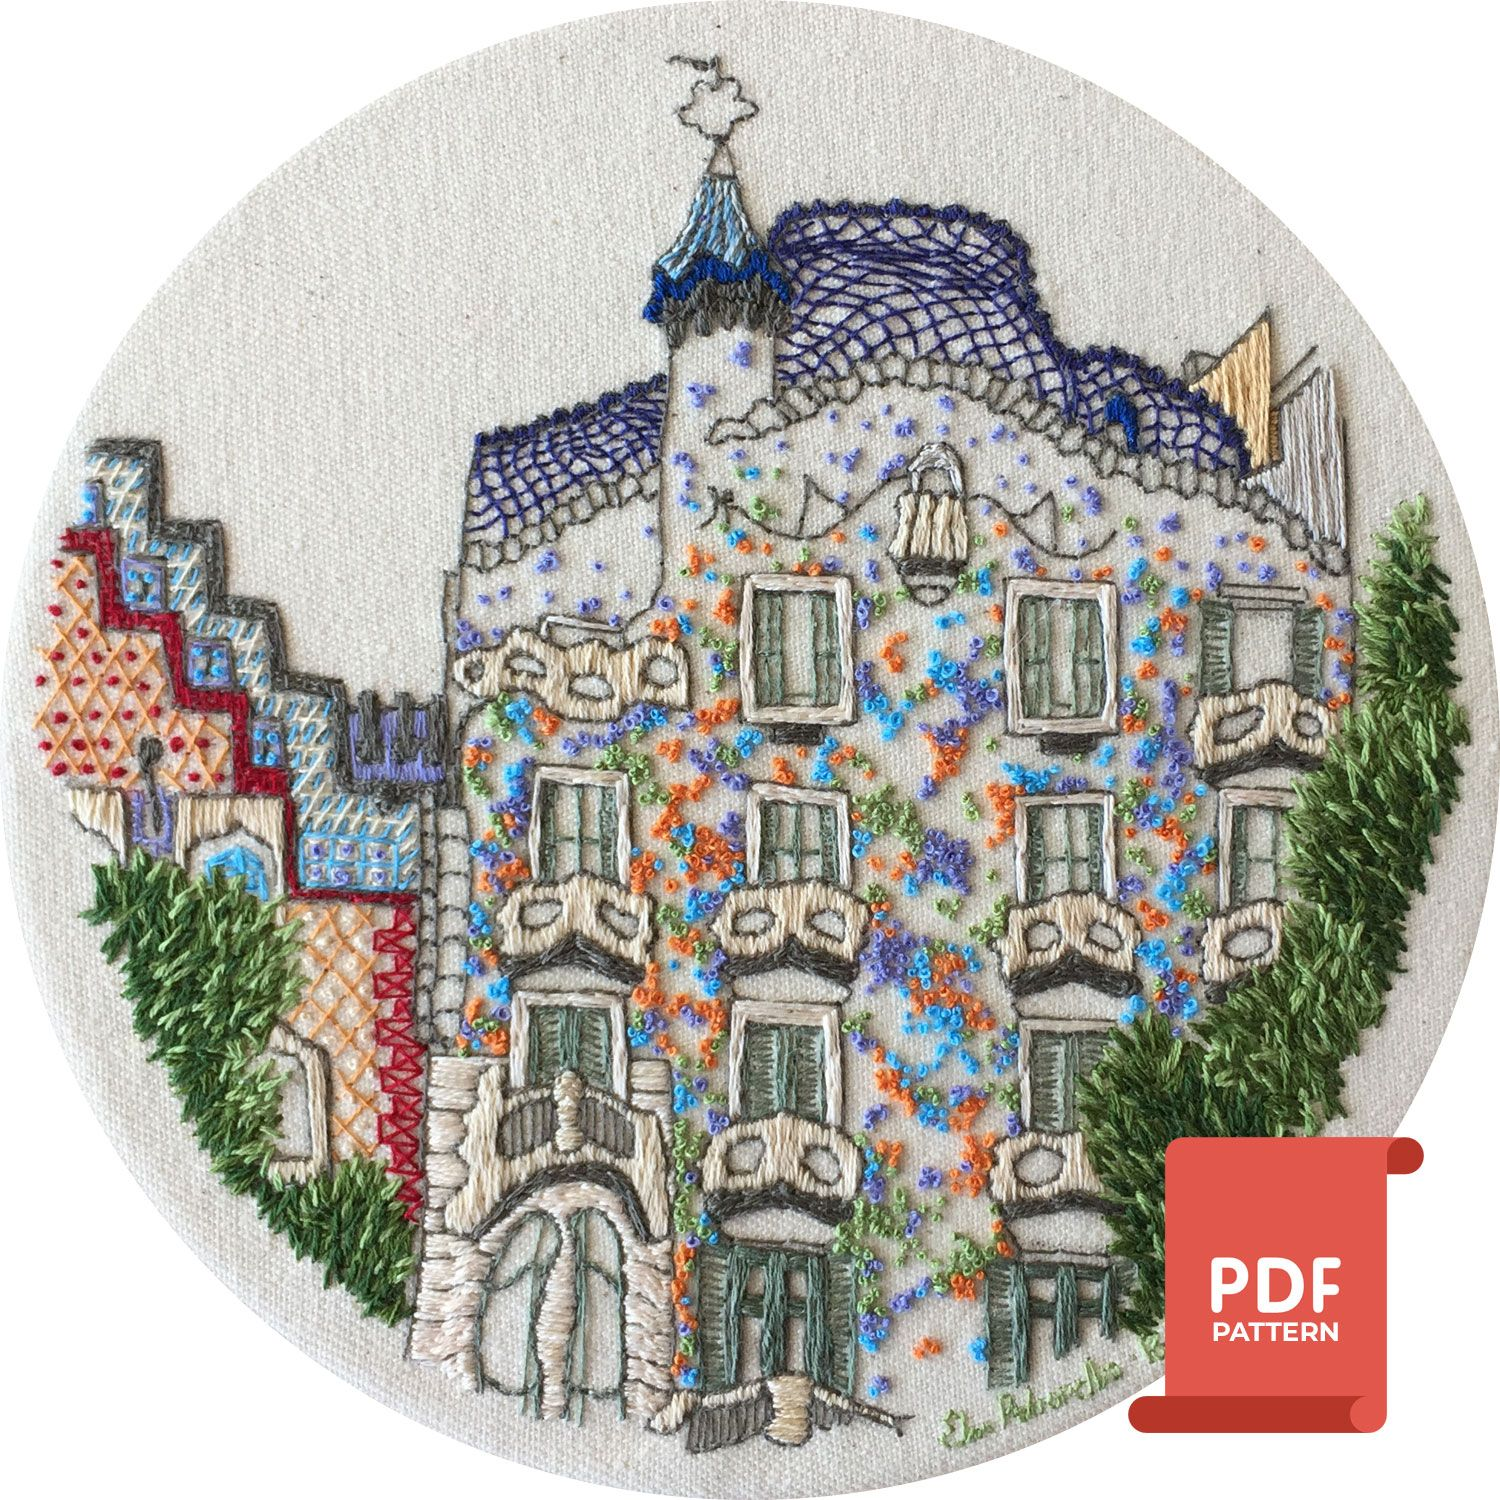 Casa Batllo French Knot embroidery design